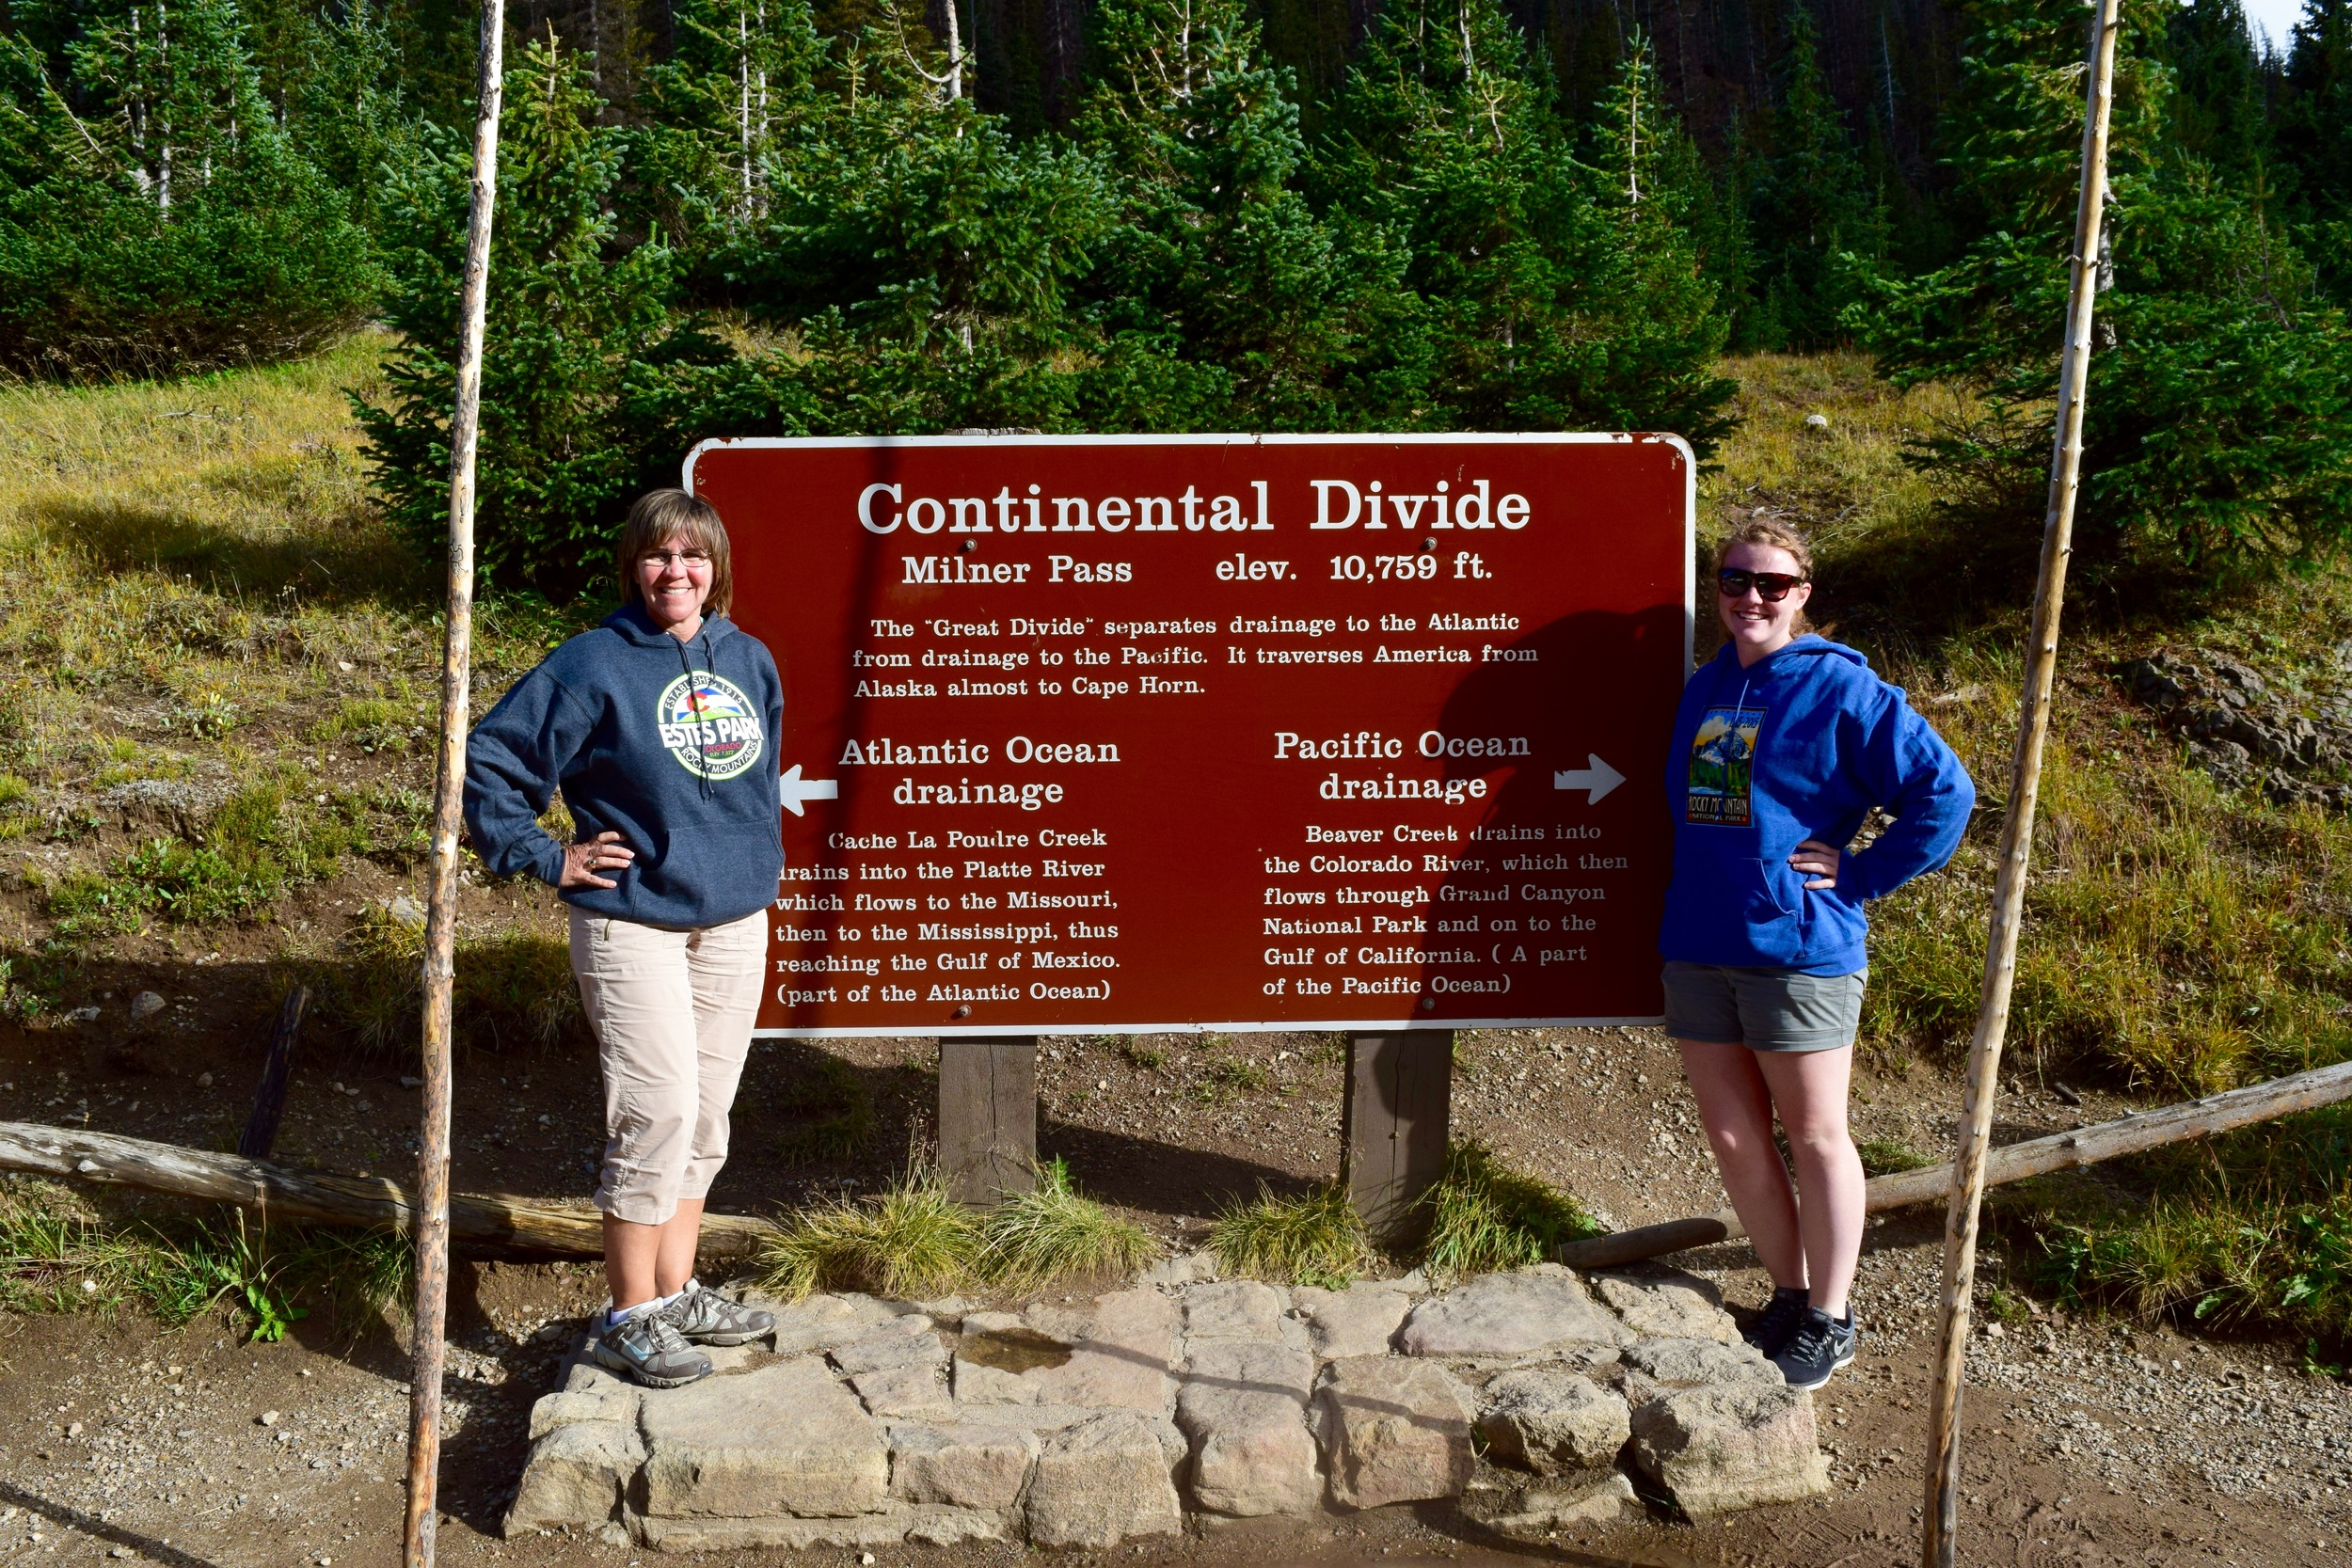 Impromptu stop at the continental divide!